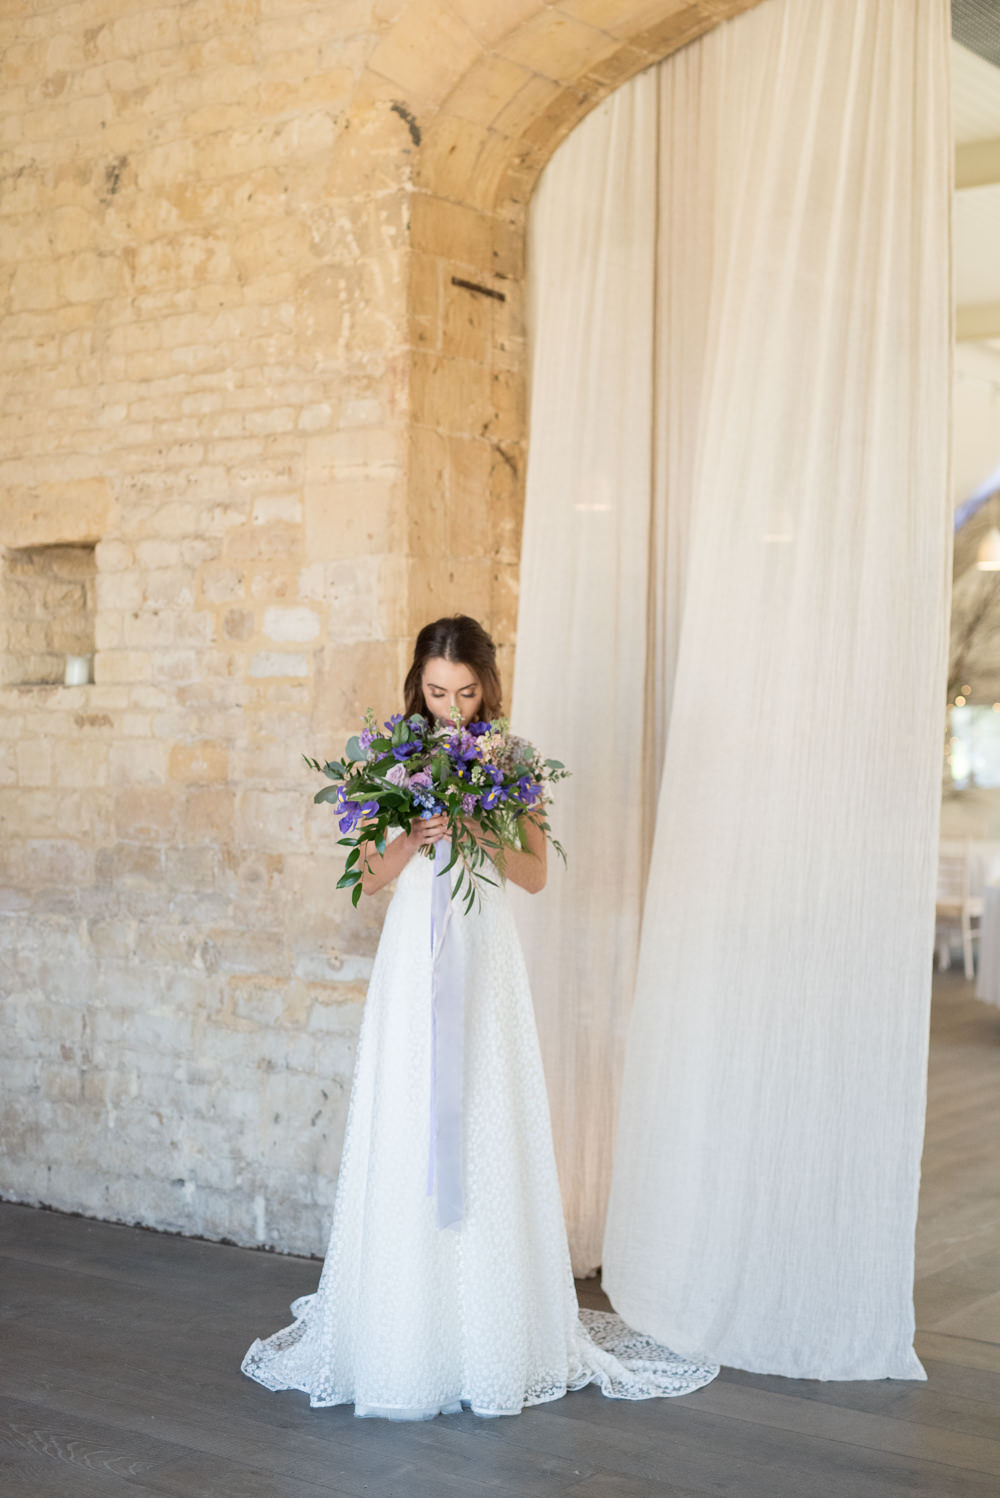 Dress Gown Bride Bridal Floral Lace Short Sleeves Train Ultra Violet Wedding Moon Gate Flower Arch Captured by Katrina Photography